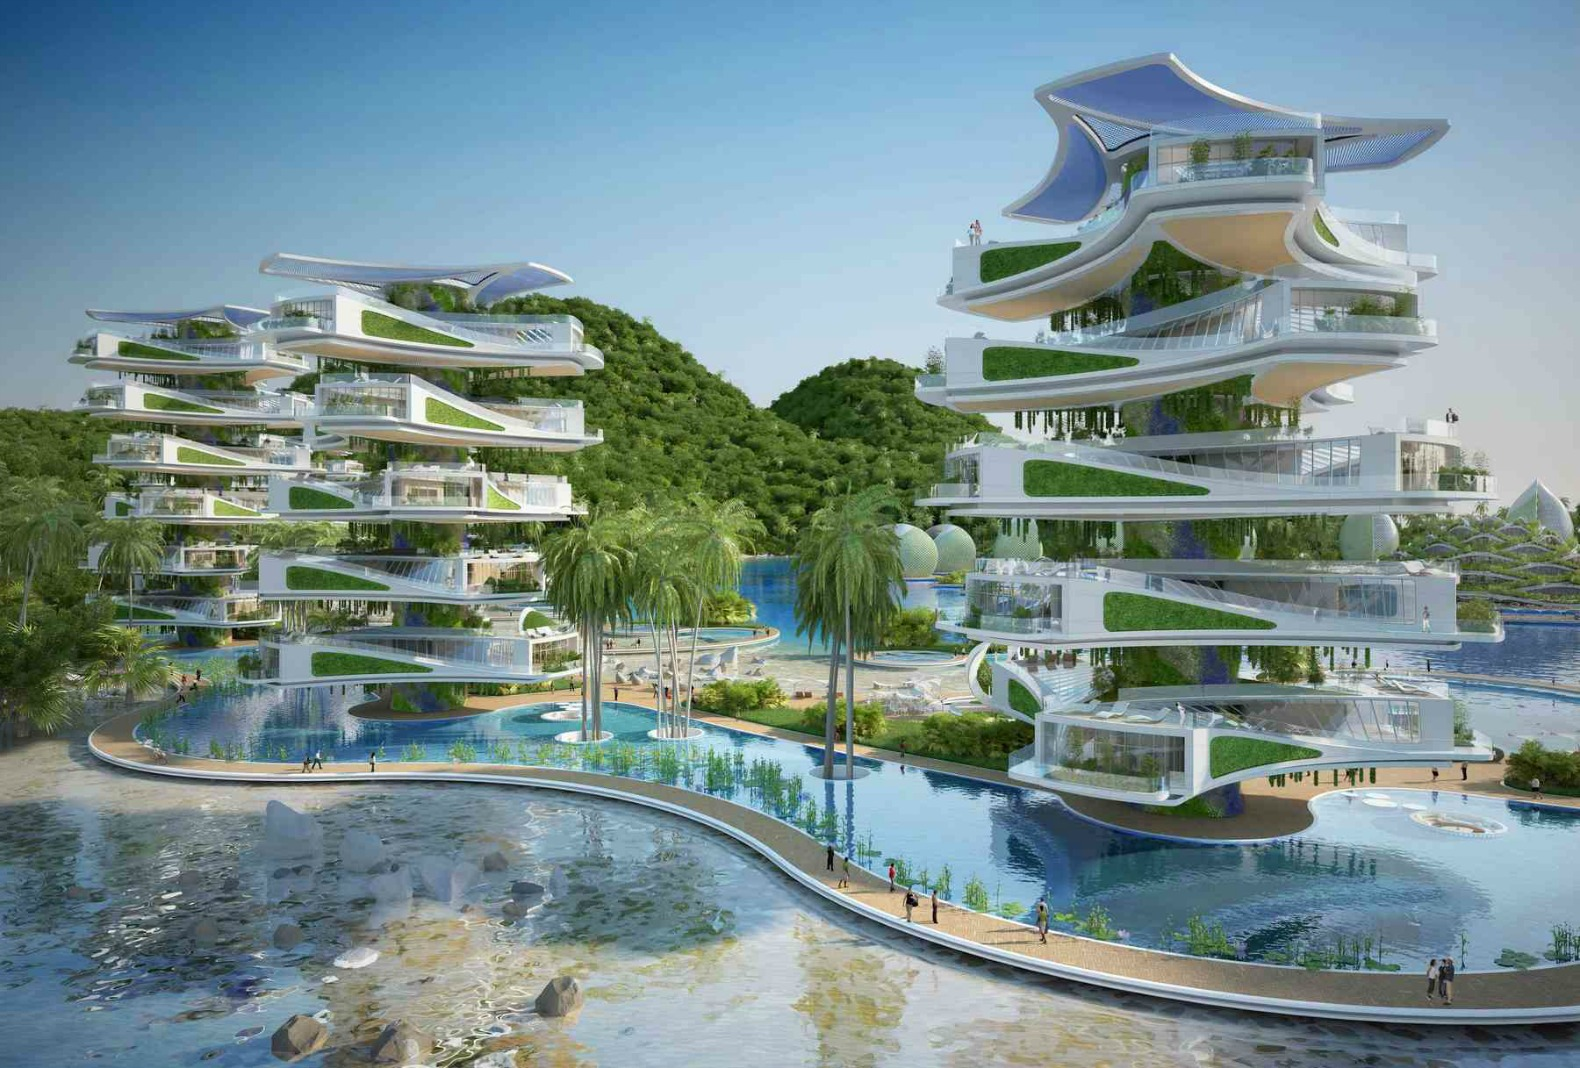 Visionary Eco Resort Design For The Philippines Features Rotating Seashell Towers on Eco Friendly House Plans Designs